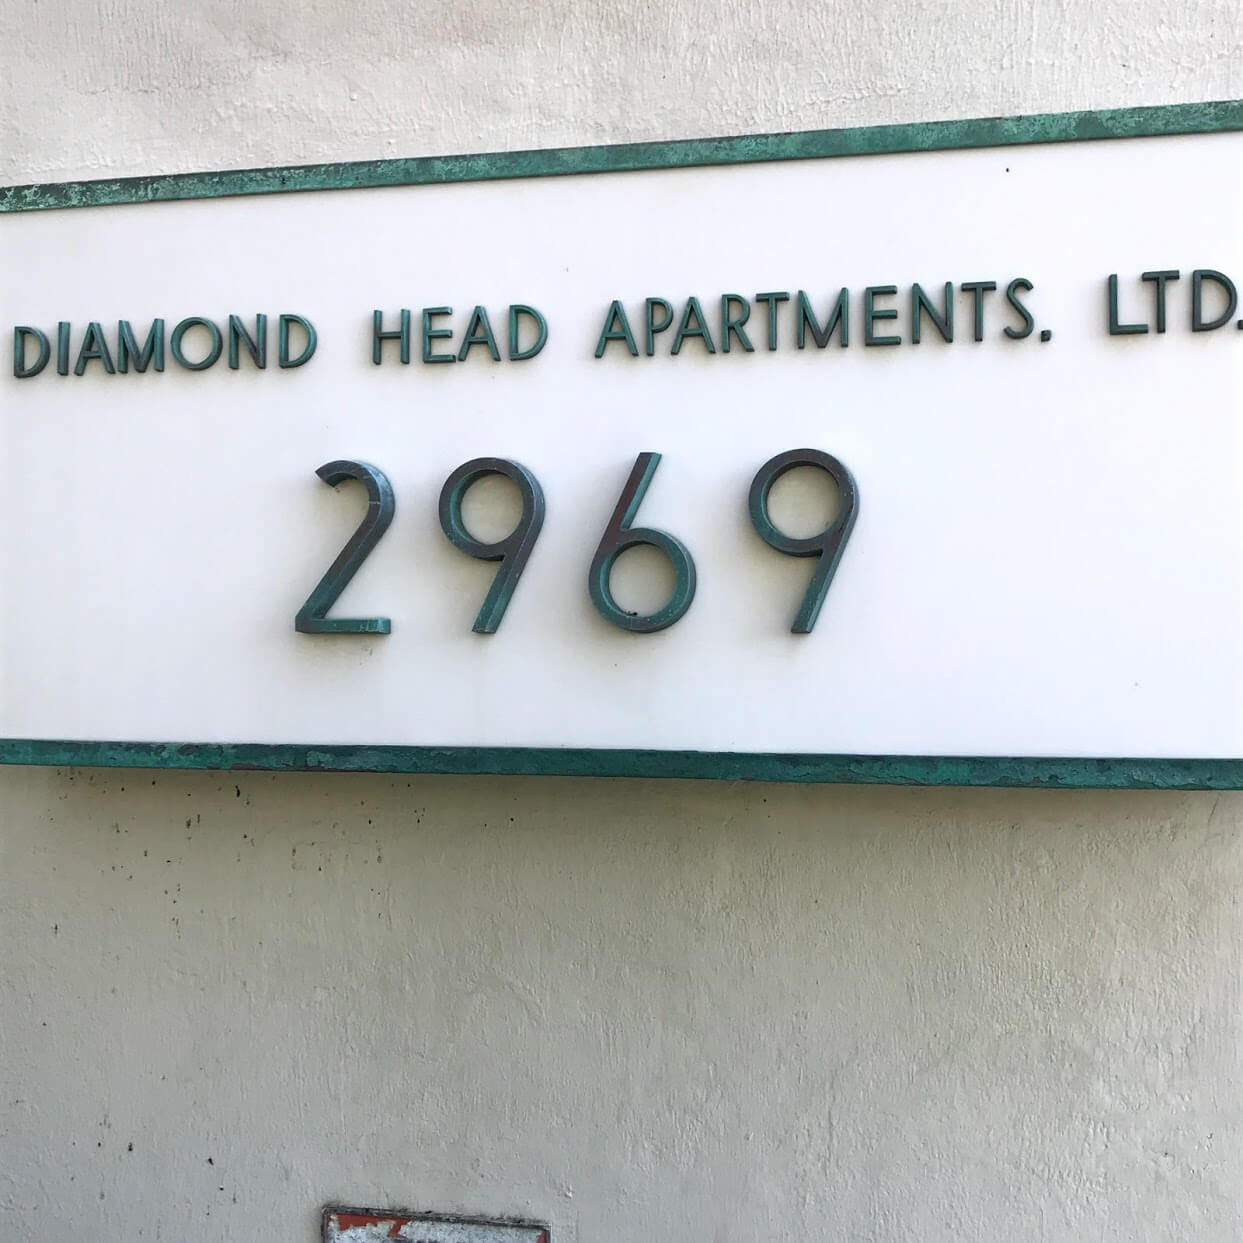 Diamond Head Apartmentsの看板